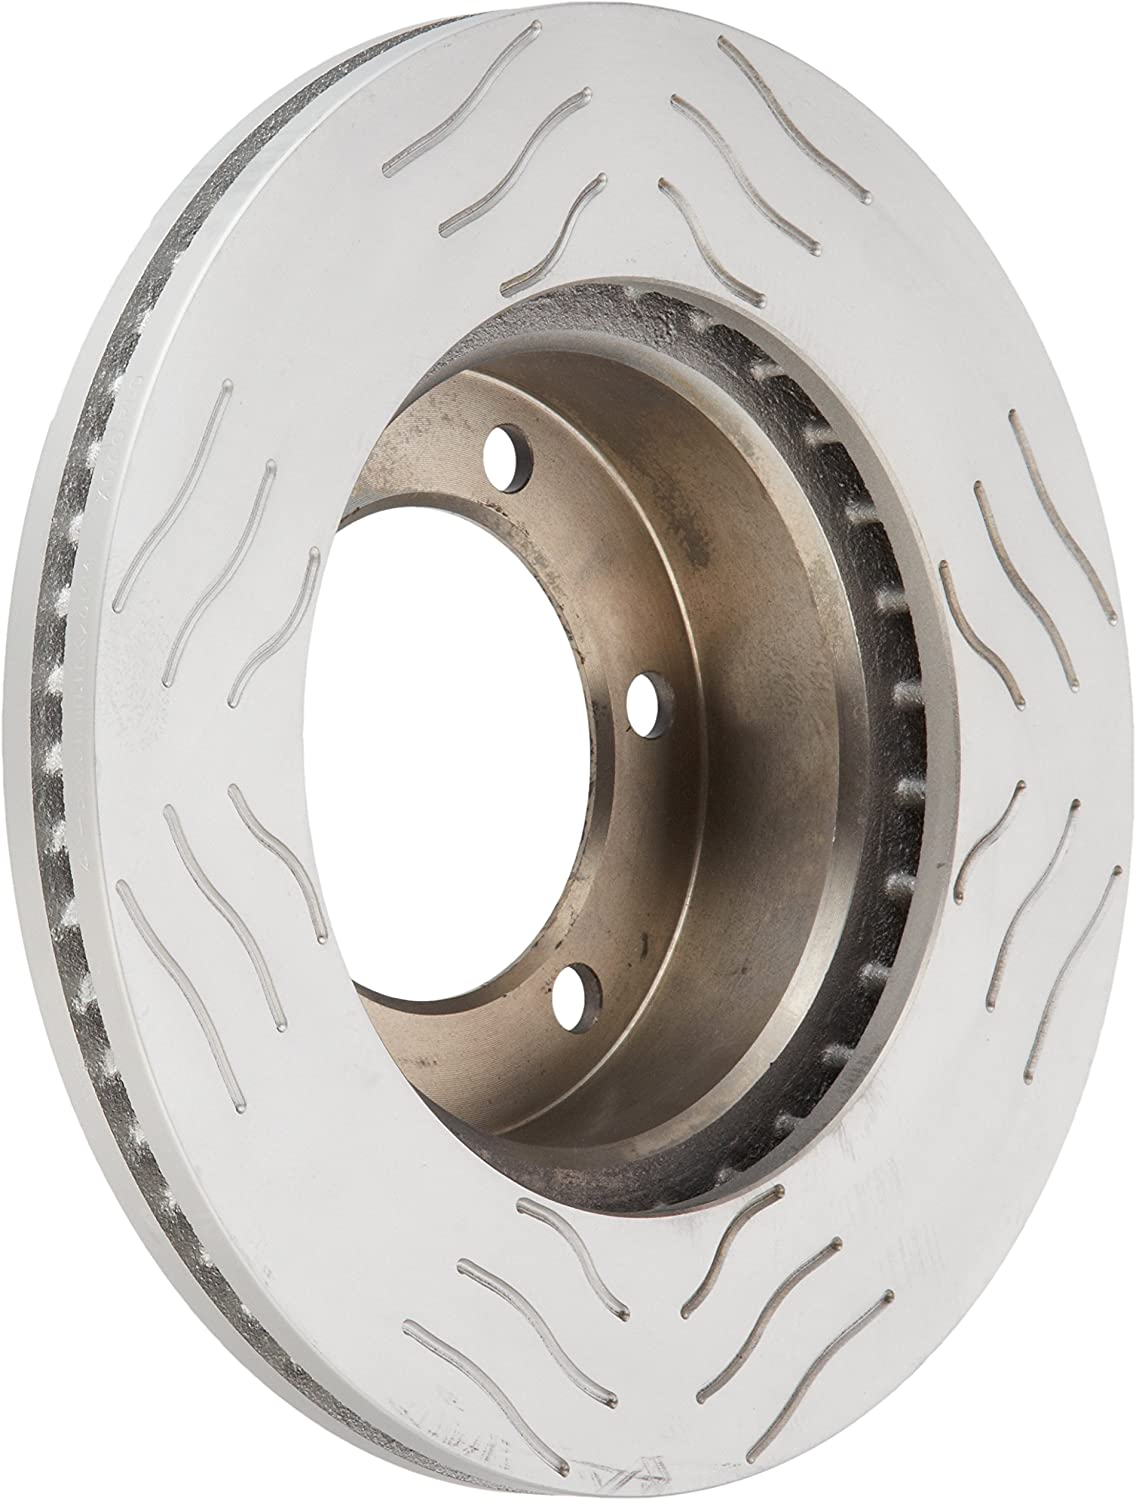 ACDelco 18A1340SD Specialty Performance Front Disc Brake Rotor Assembly for Severe Duty